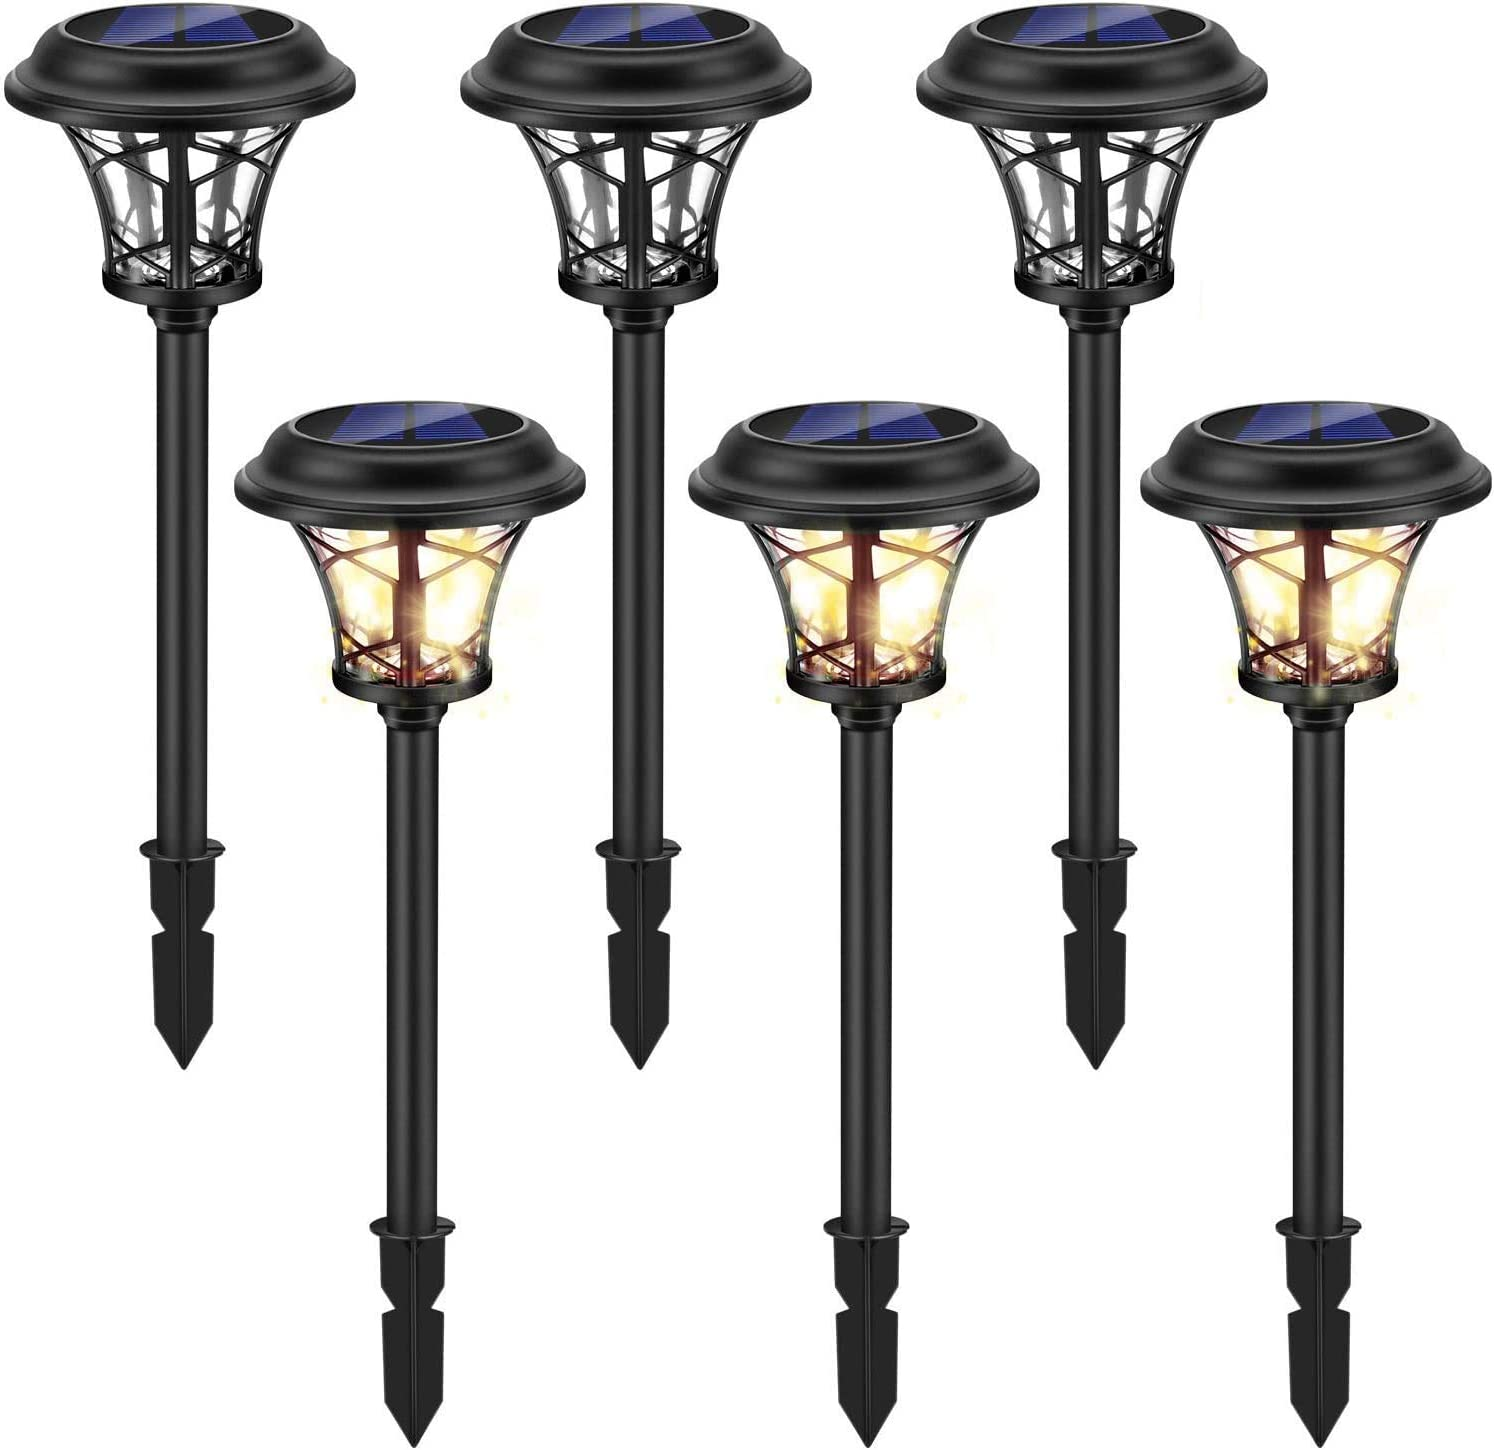 6 Pack Large Solar Lights Outdoor Waterproof, Lights Sun Powered, Black Stainless Steel Glass Garden Pathway Lights, 20 Lumen LED Solar Landscape Lighting for Lawn, Yard and Driveway - White Lights